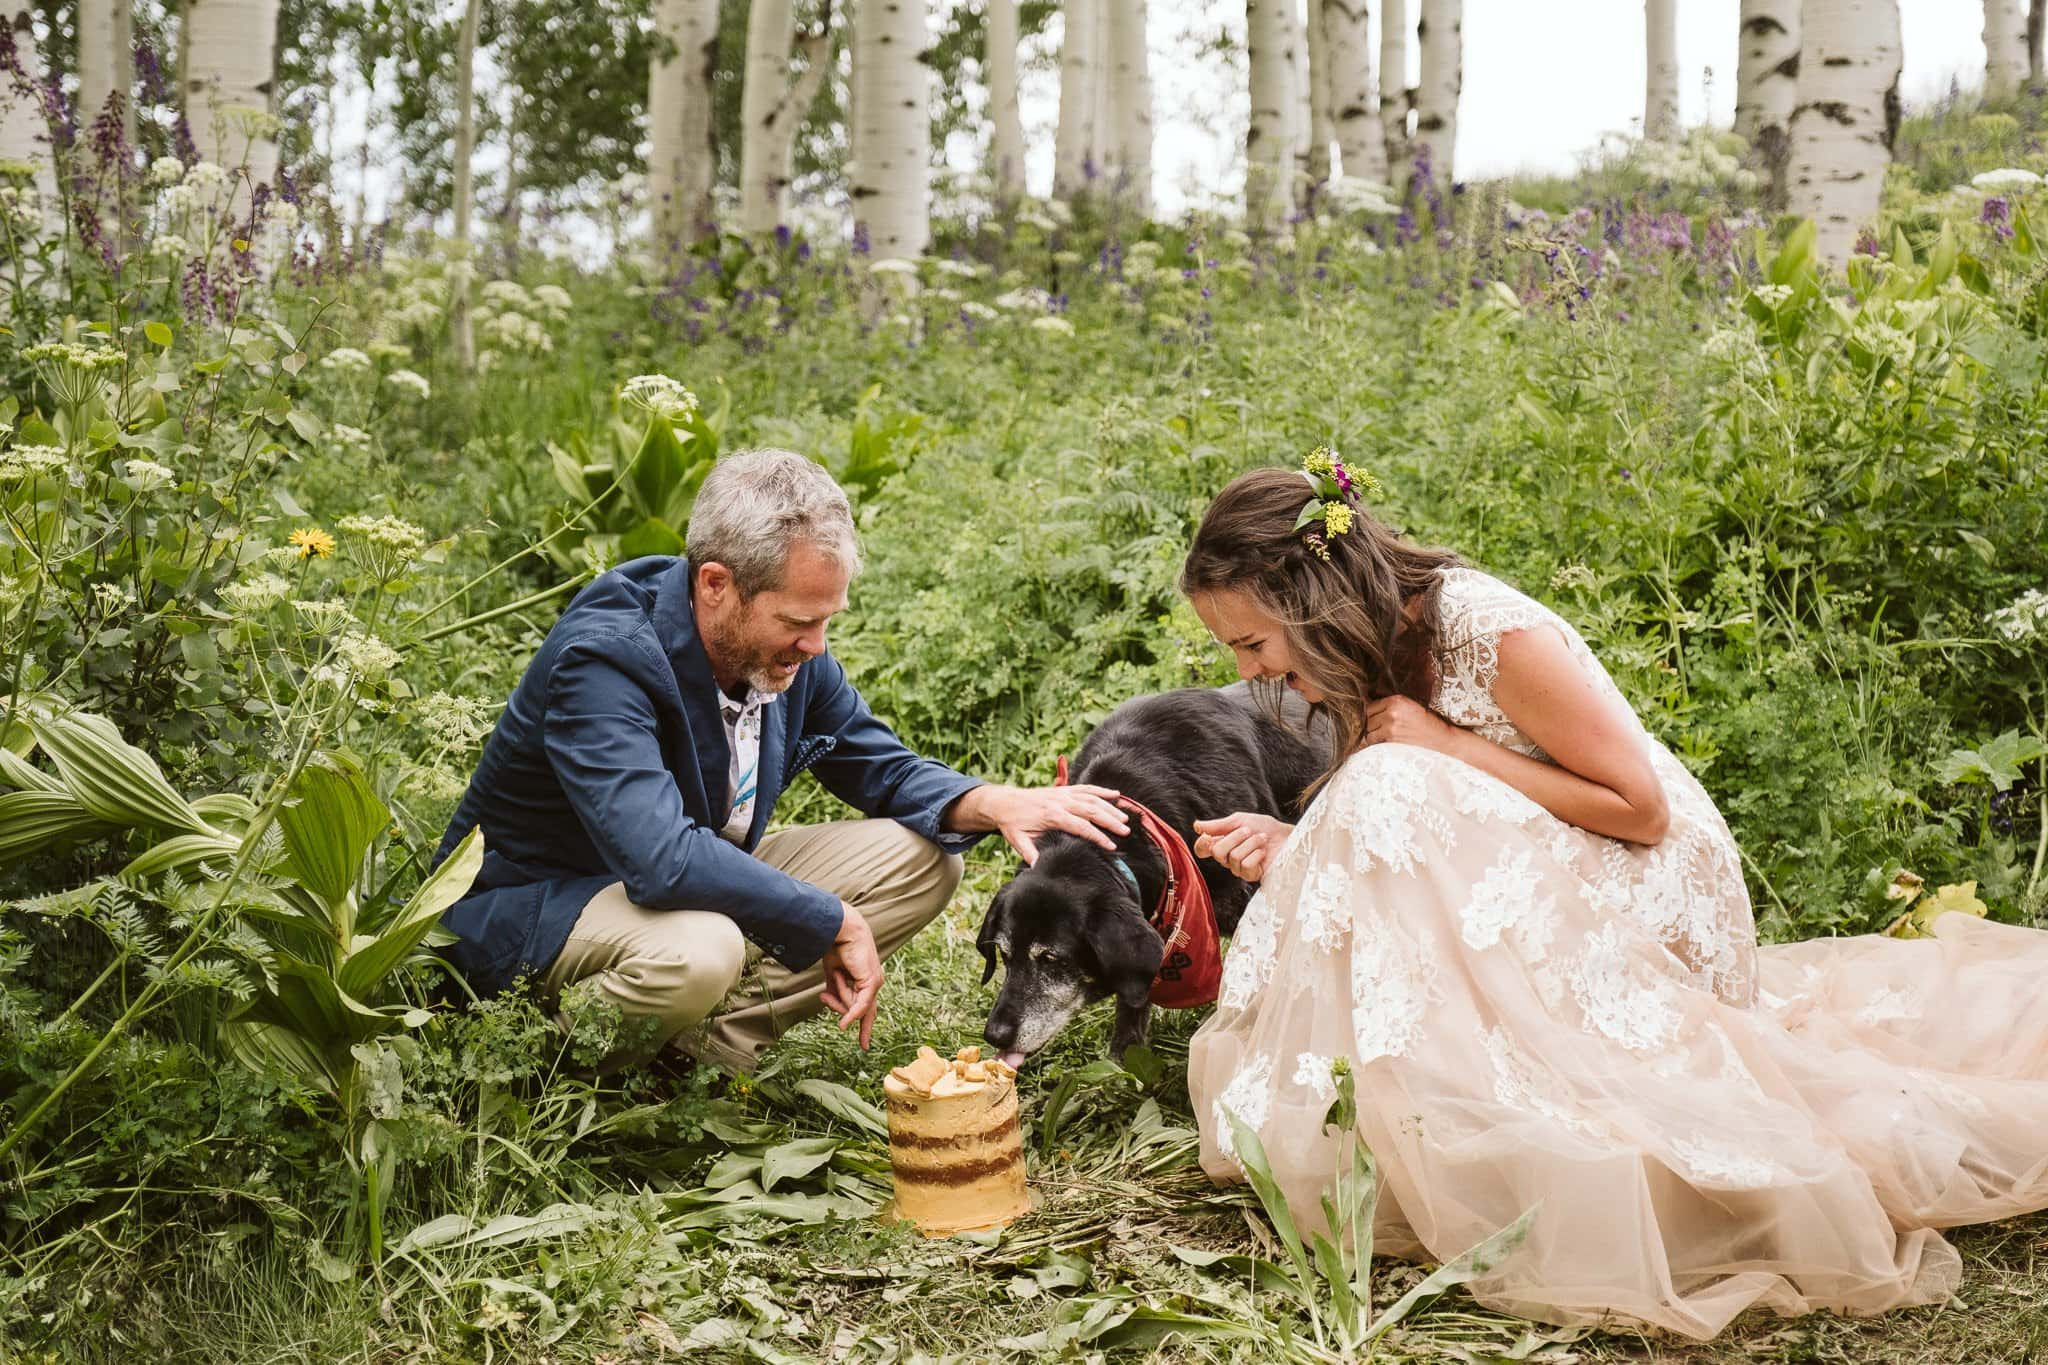 Bride and groom with their dog, dog birthday cake